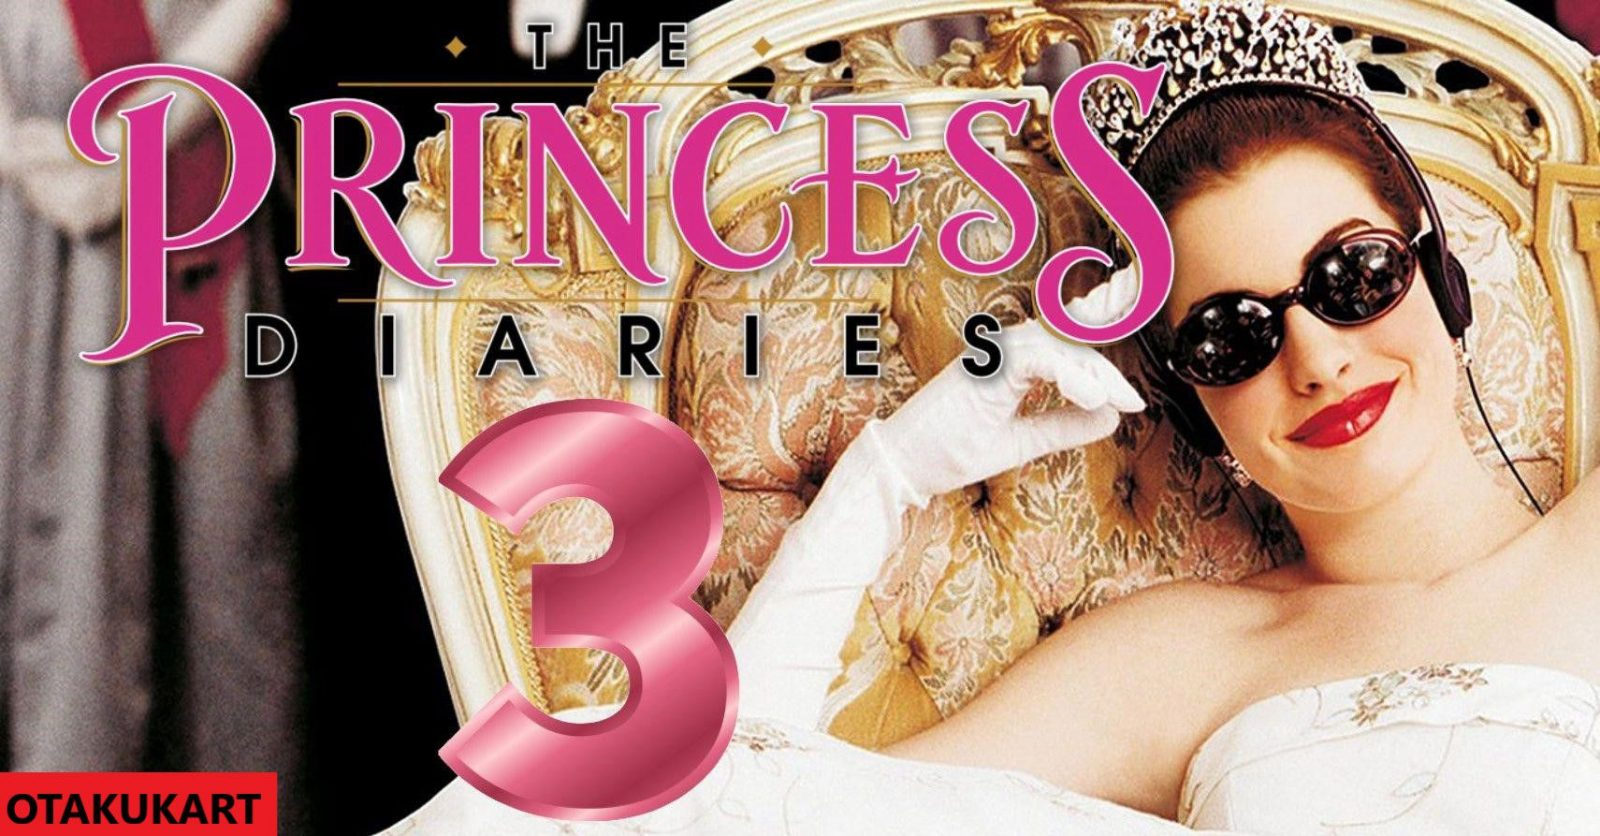 Princess Diaries 3 Movie: Release Date, New Cast and Plot